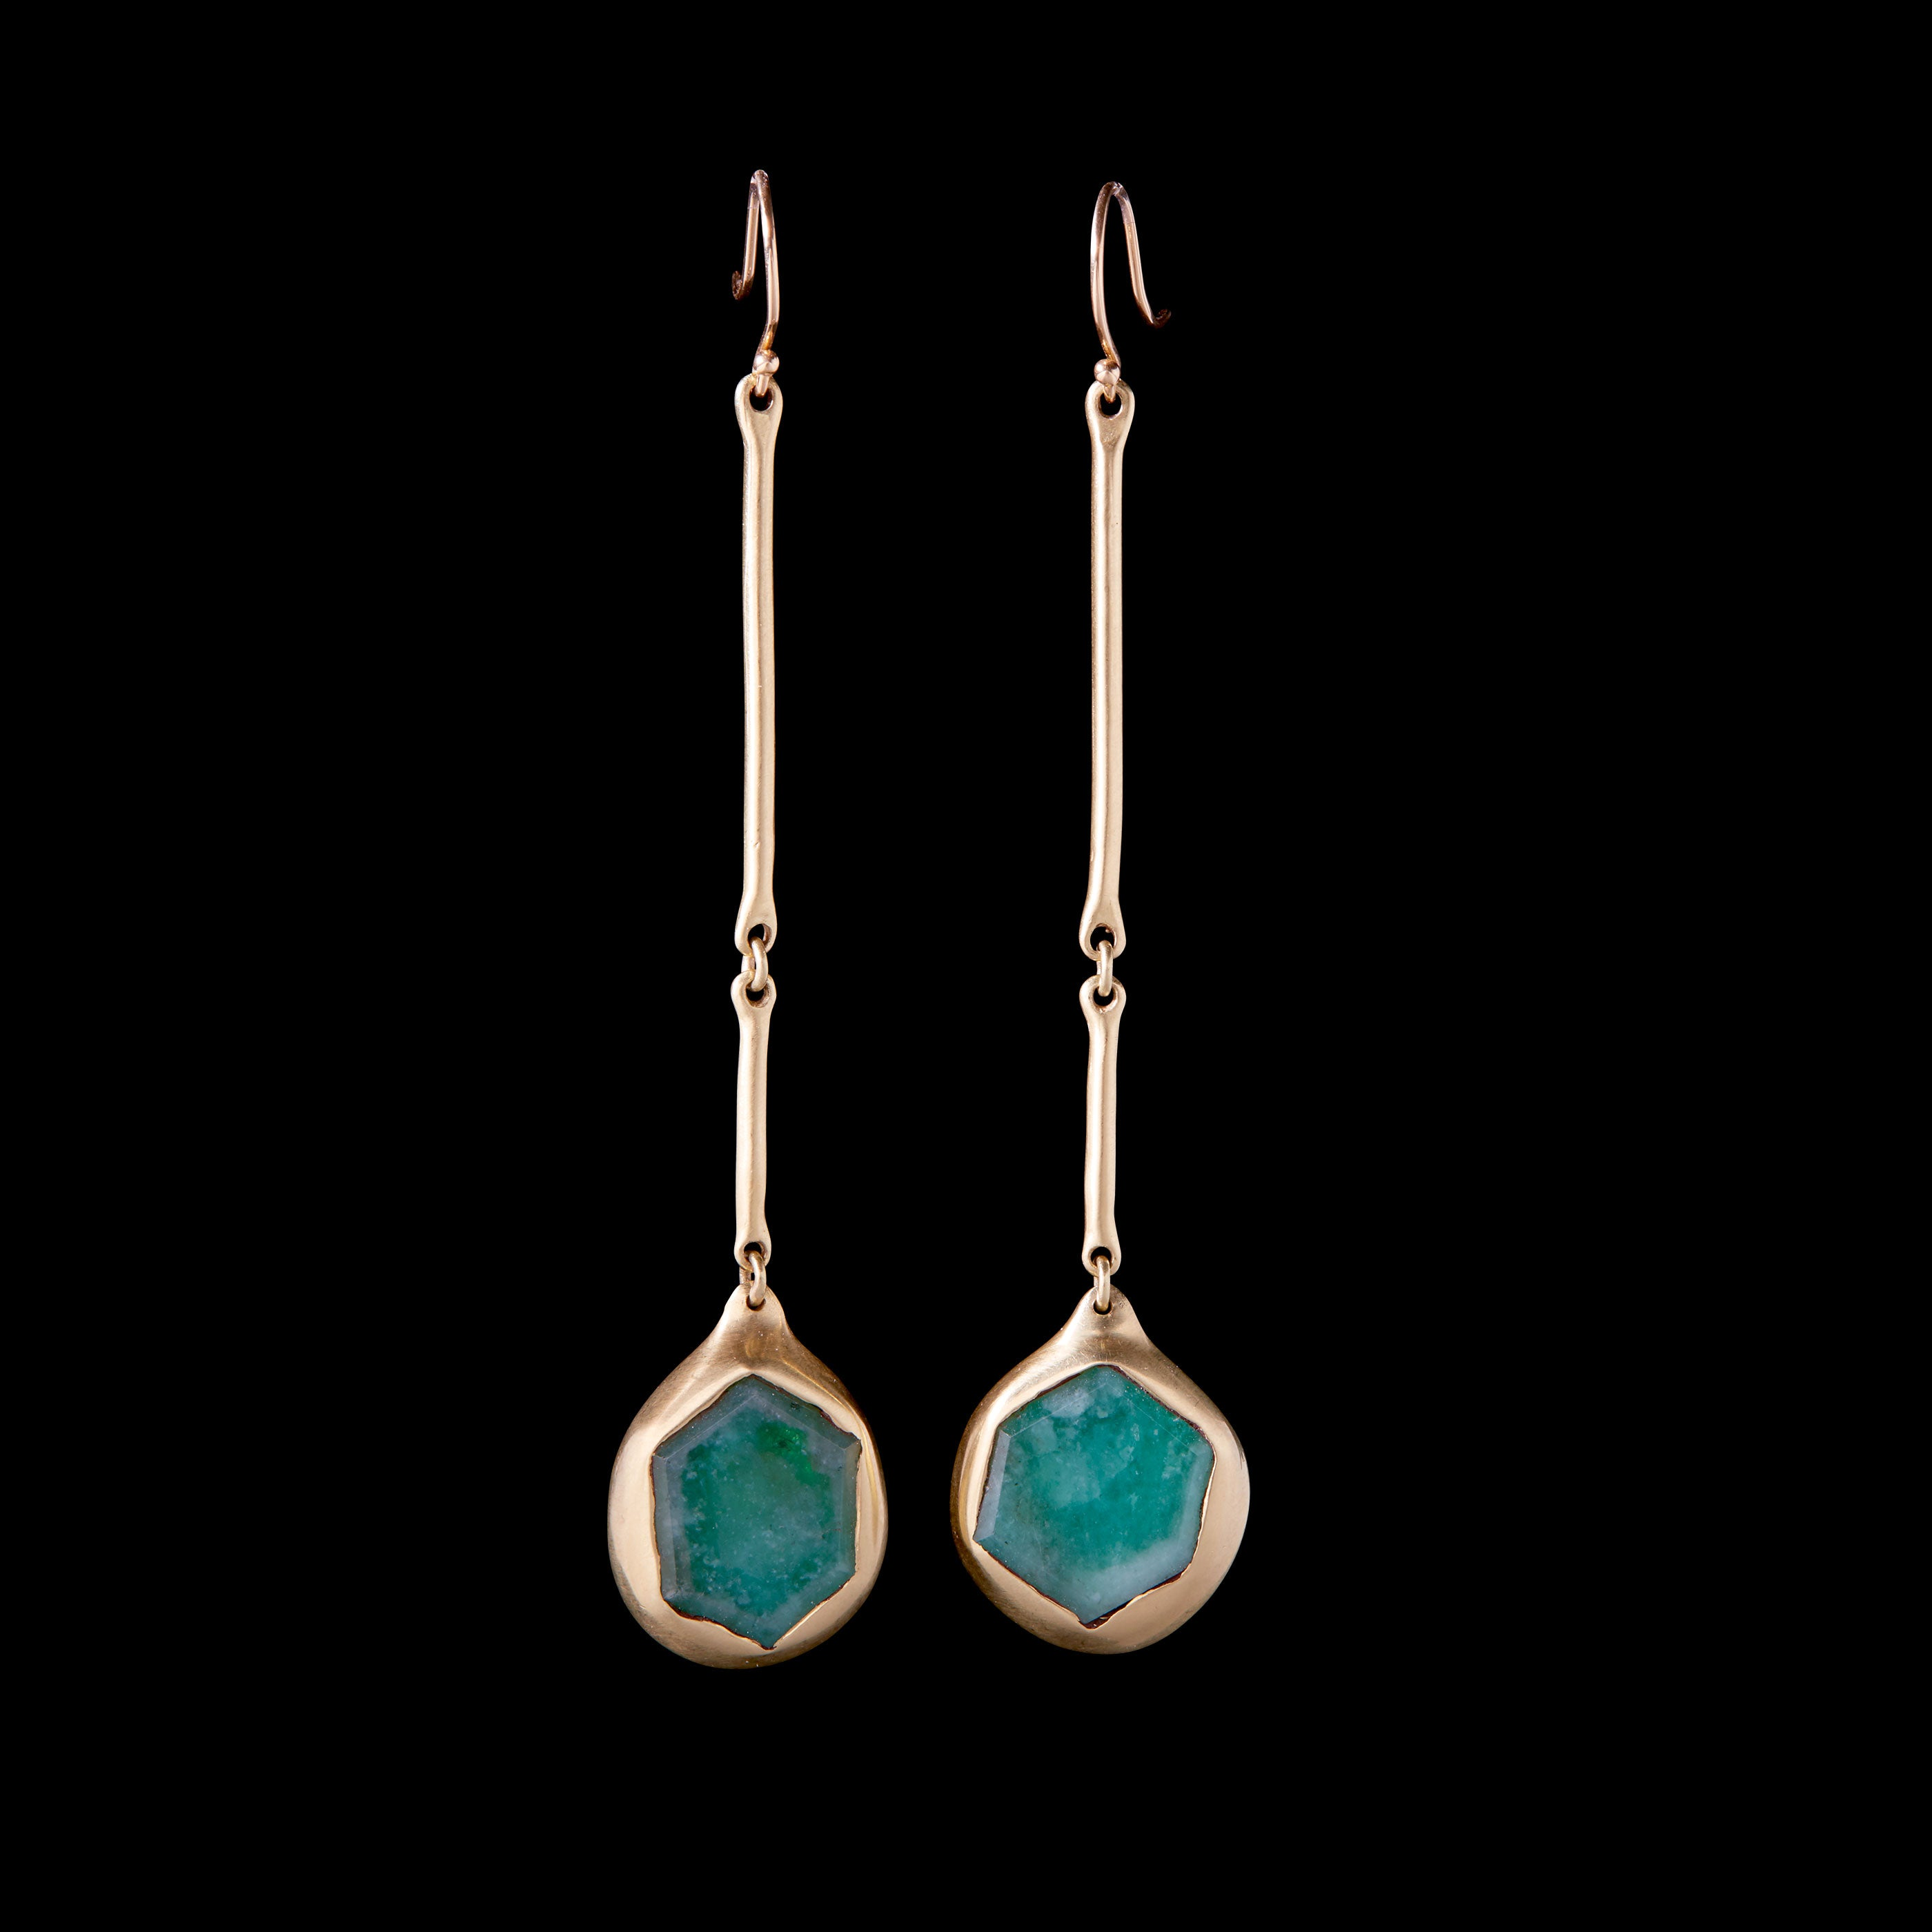 Emerald Slice Pendant Earrings